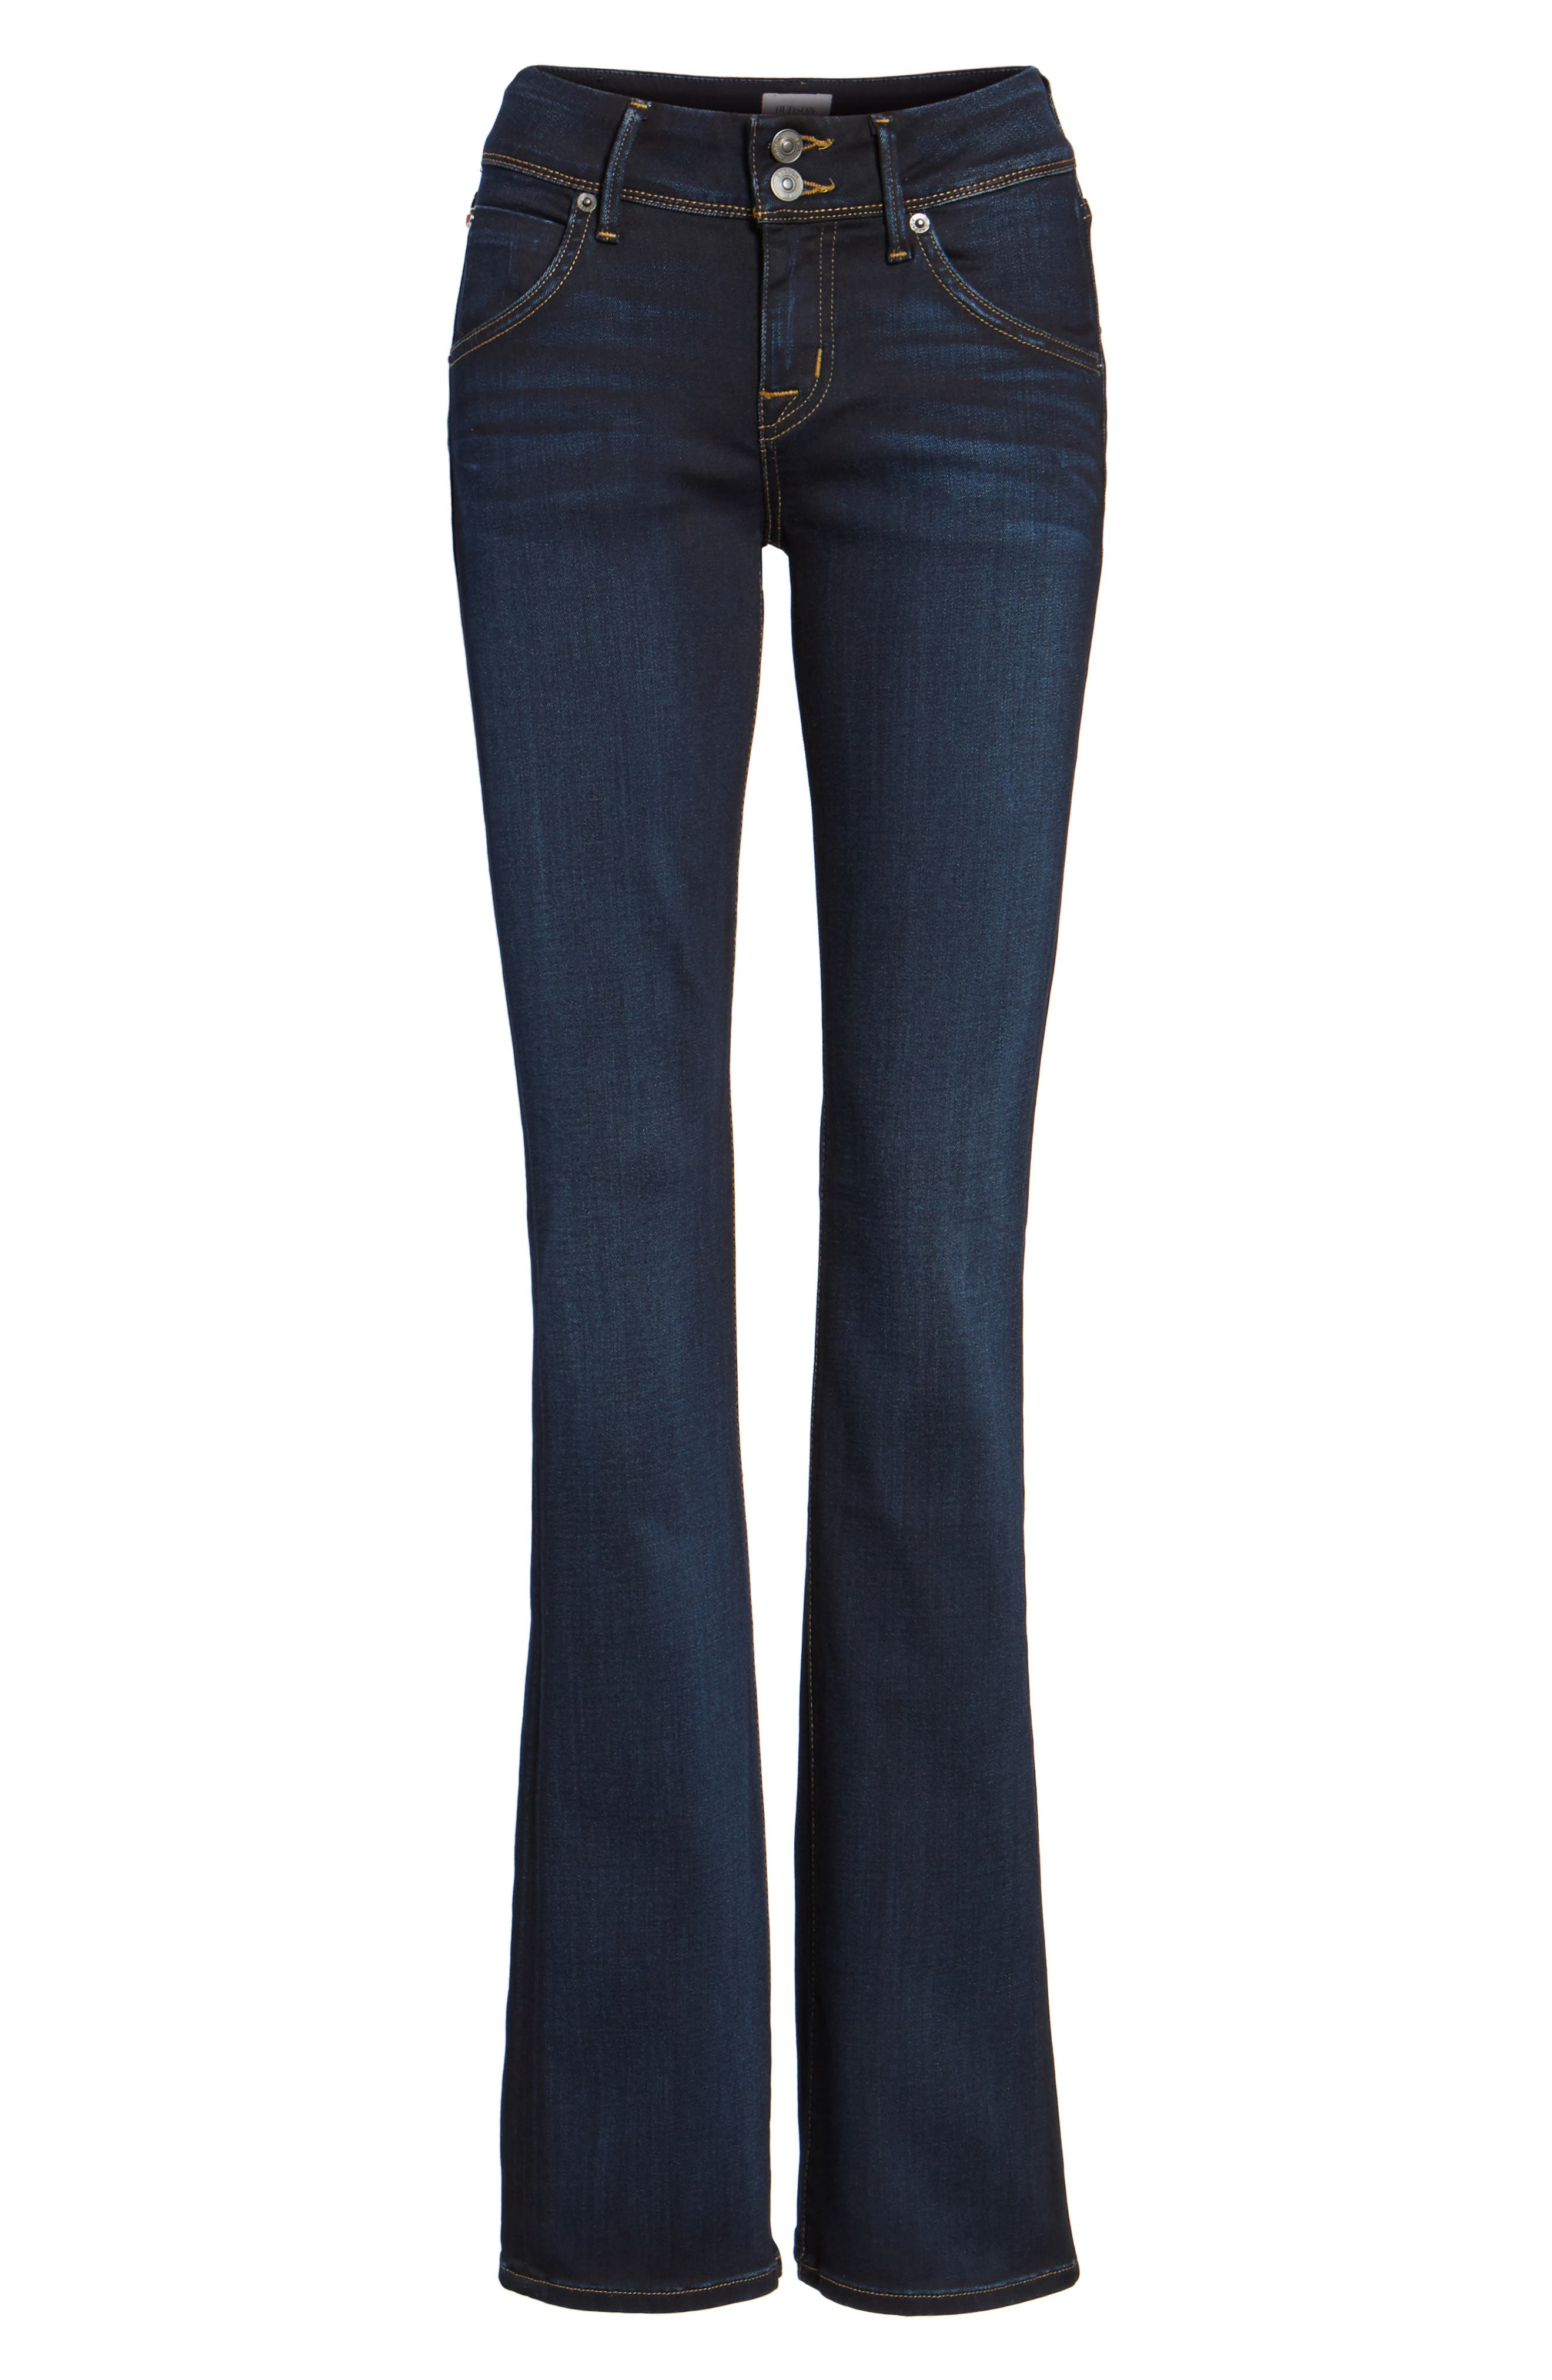 HUDSON JEANS 'Elysian - Beth' Baby Bootcut Jeans, Main, color, ORACLE